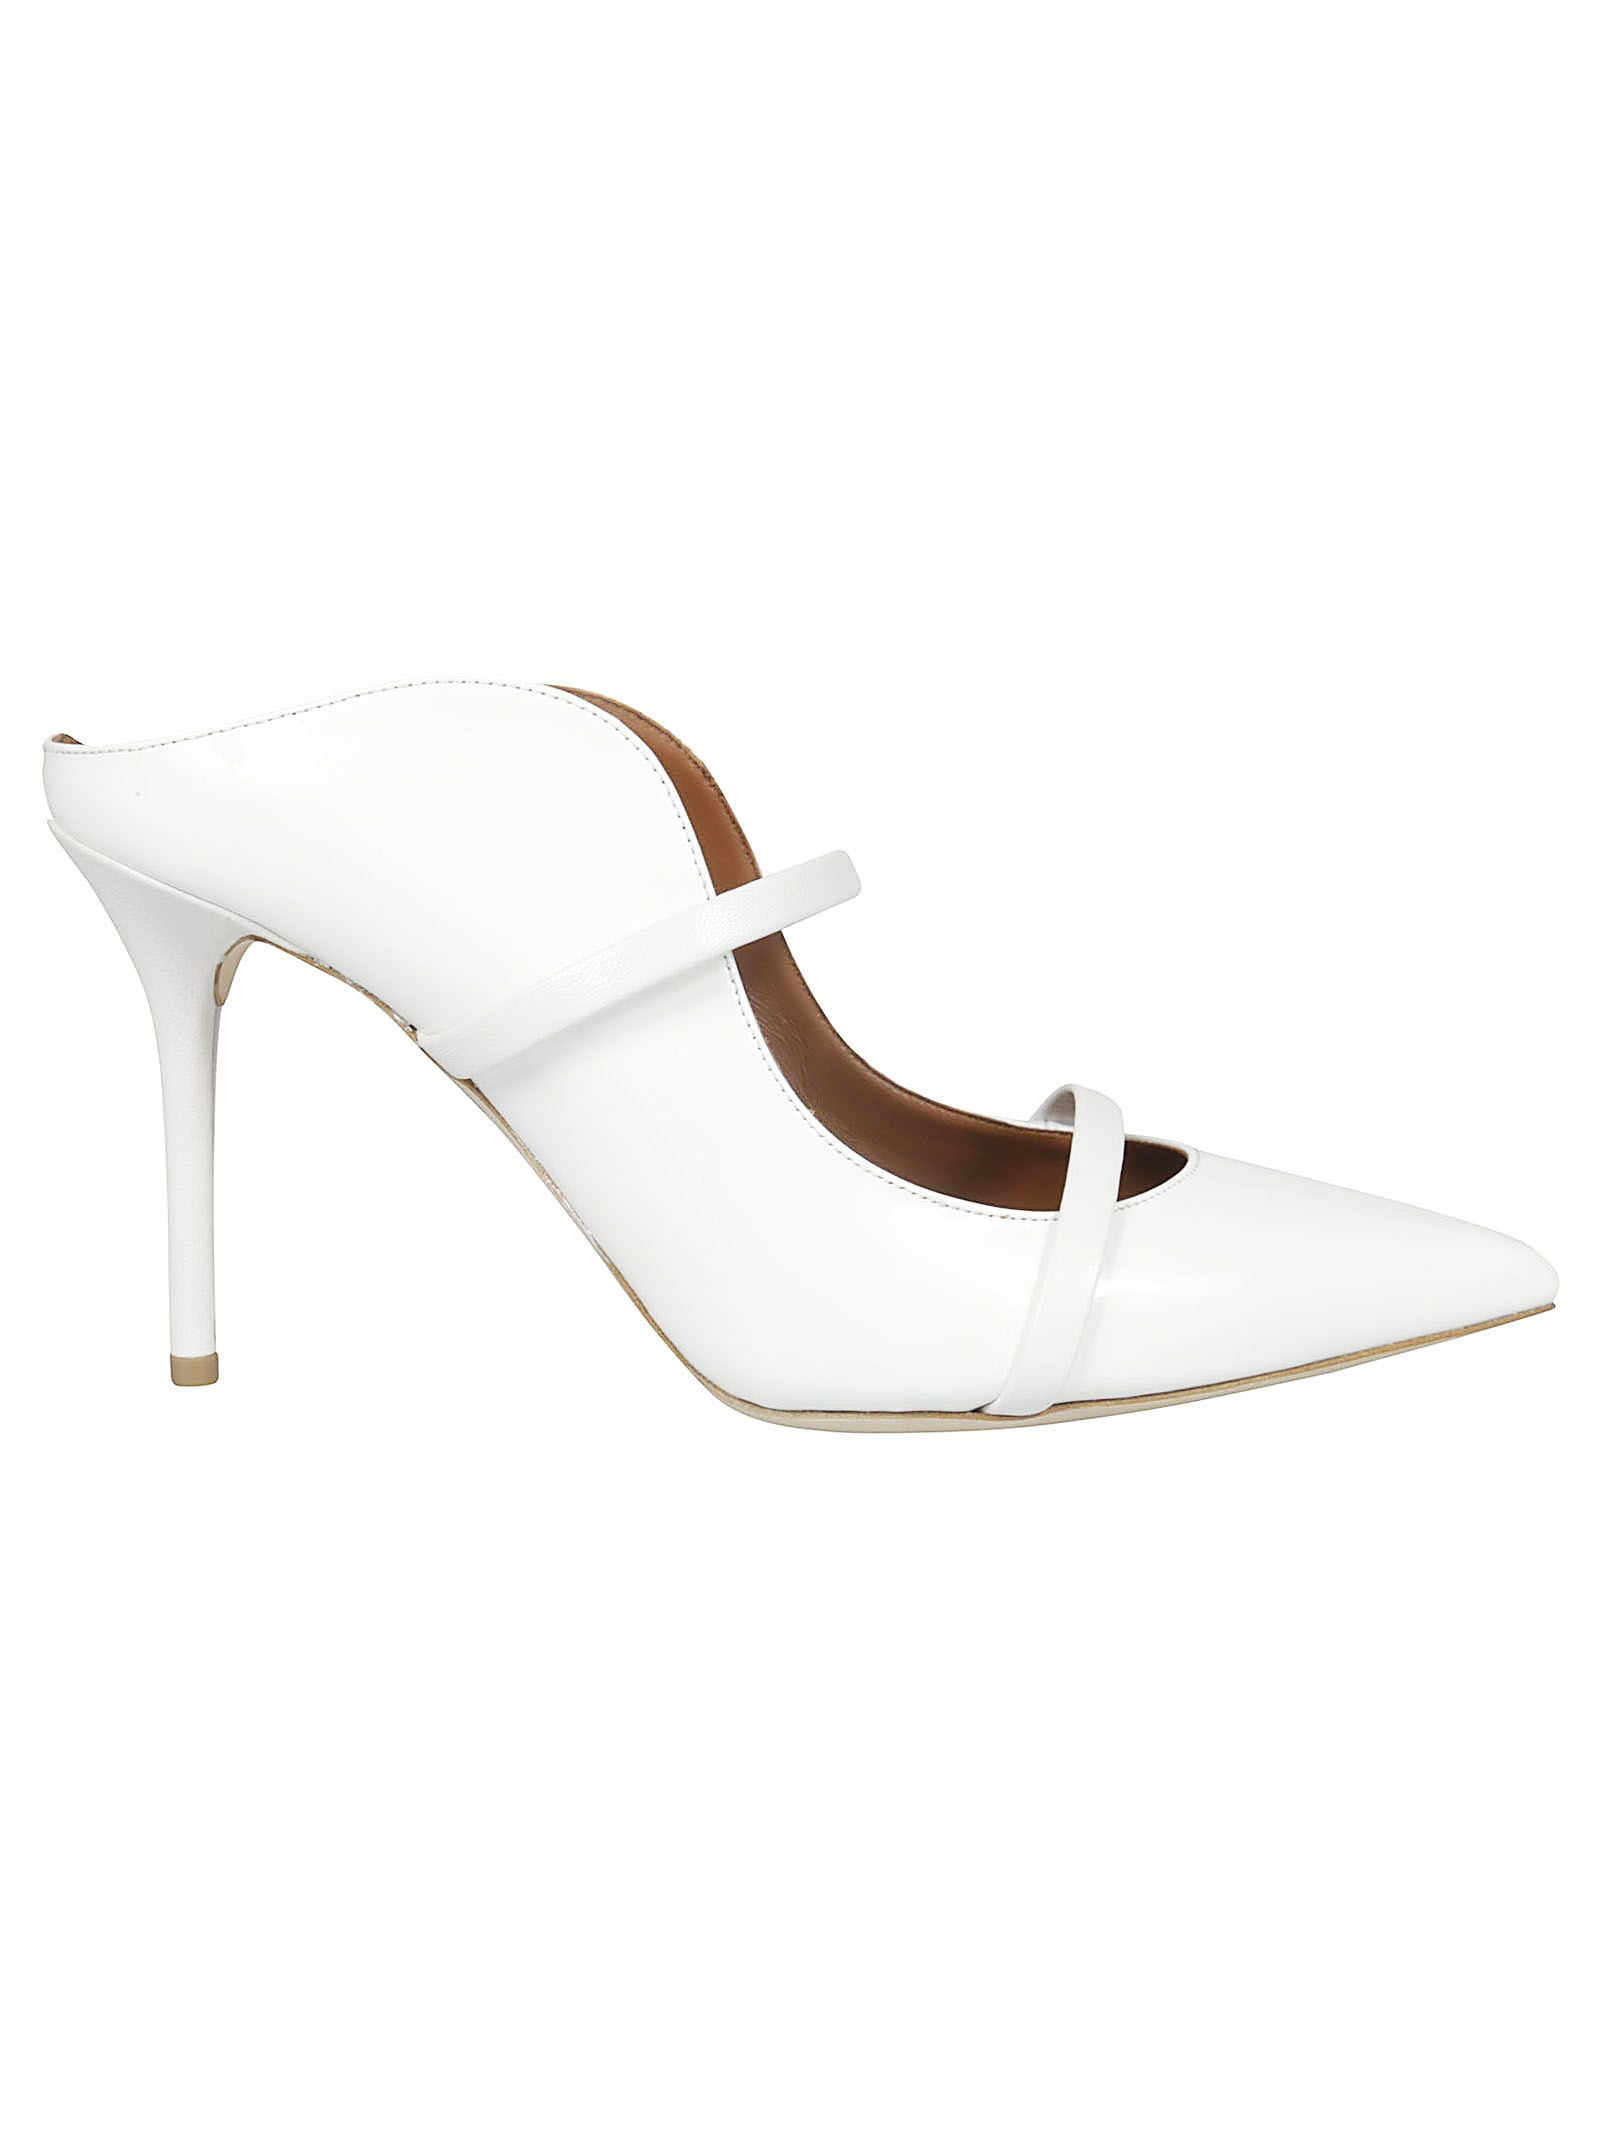 0a2b9fa1b Shop Malone Souliers on sale at the Marie Claire Edit